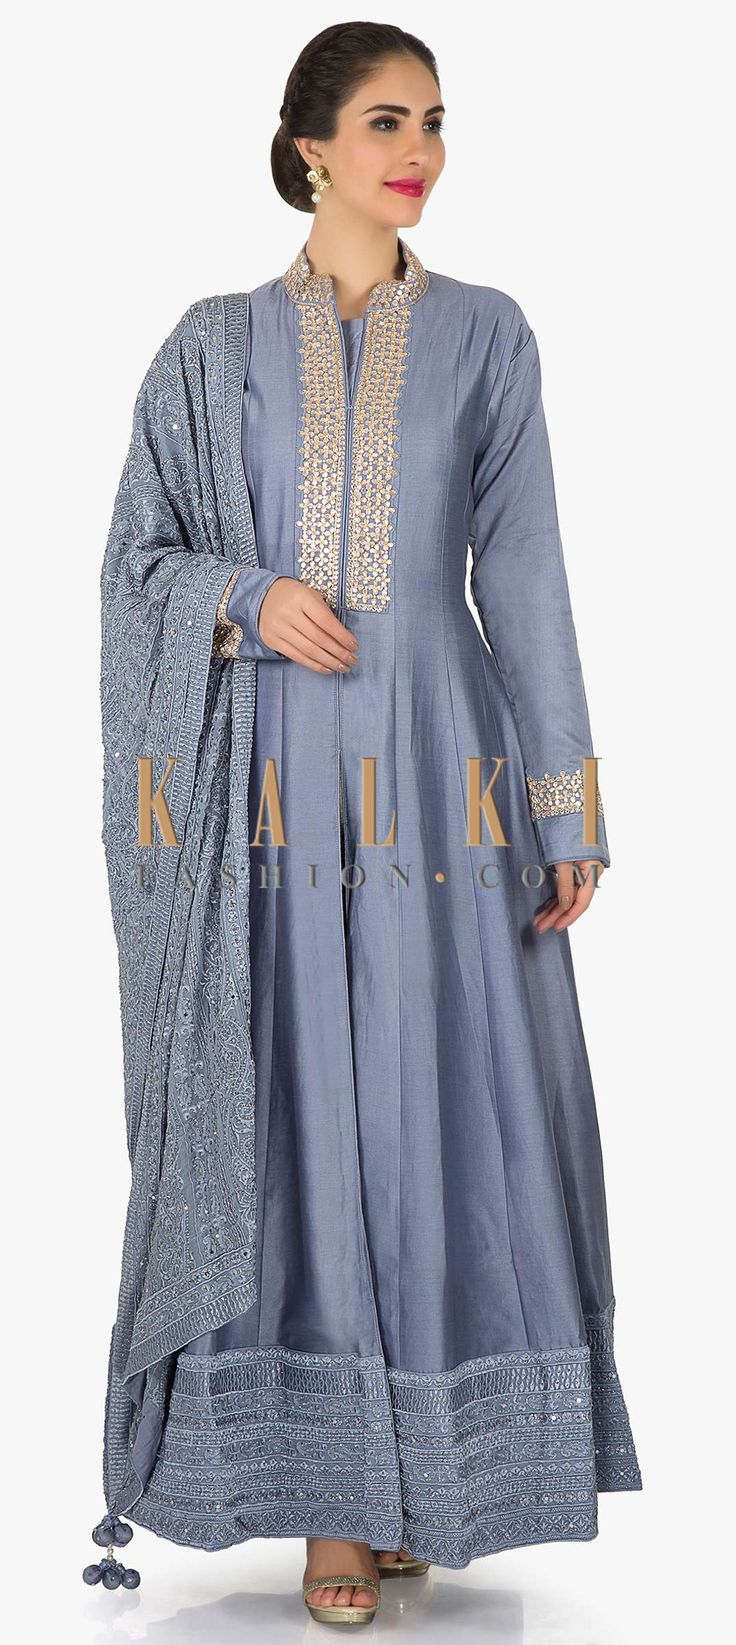 Buy Online from the link below. We ship worldwide (Free Shipping over US$100) Click Anywhere to Tag Lavender blue anarkali suit in silk with embroidered placket only on Kalki Lavender anarkali suit featuring in raw silk. Collar and placket are embellished in gotta patch embroidery. Matched with unstitched bottom fabric in santoon and dupatta with thread embroidery.